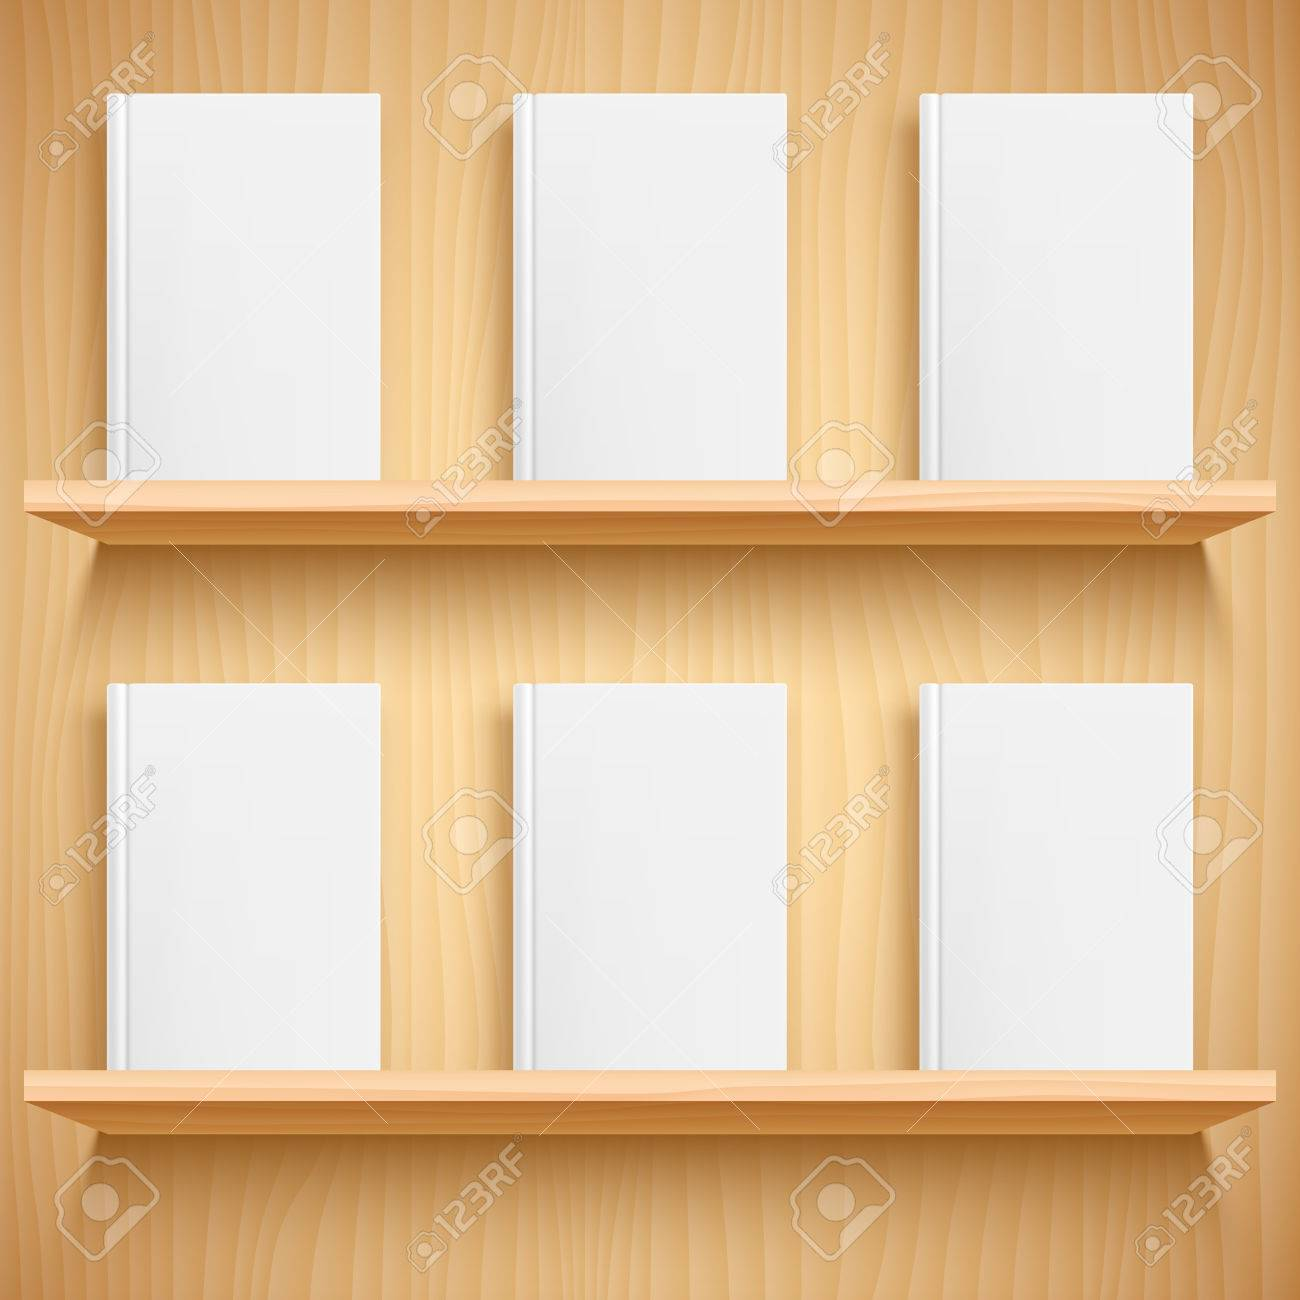 Two Wooden Bookshelves And Books With Empty Blank Covers White Object Mock Up Or